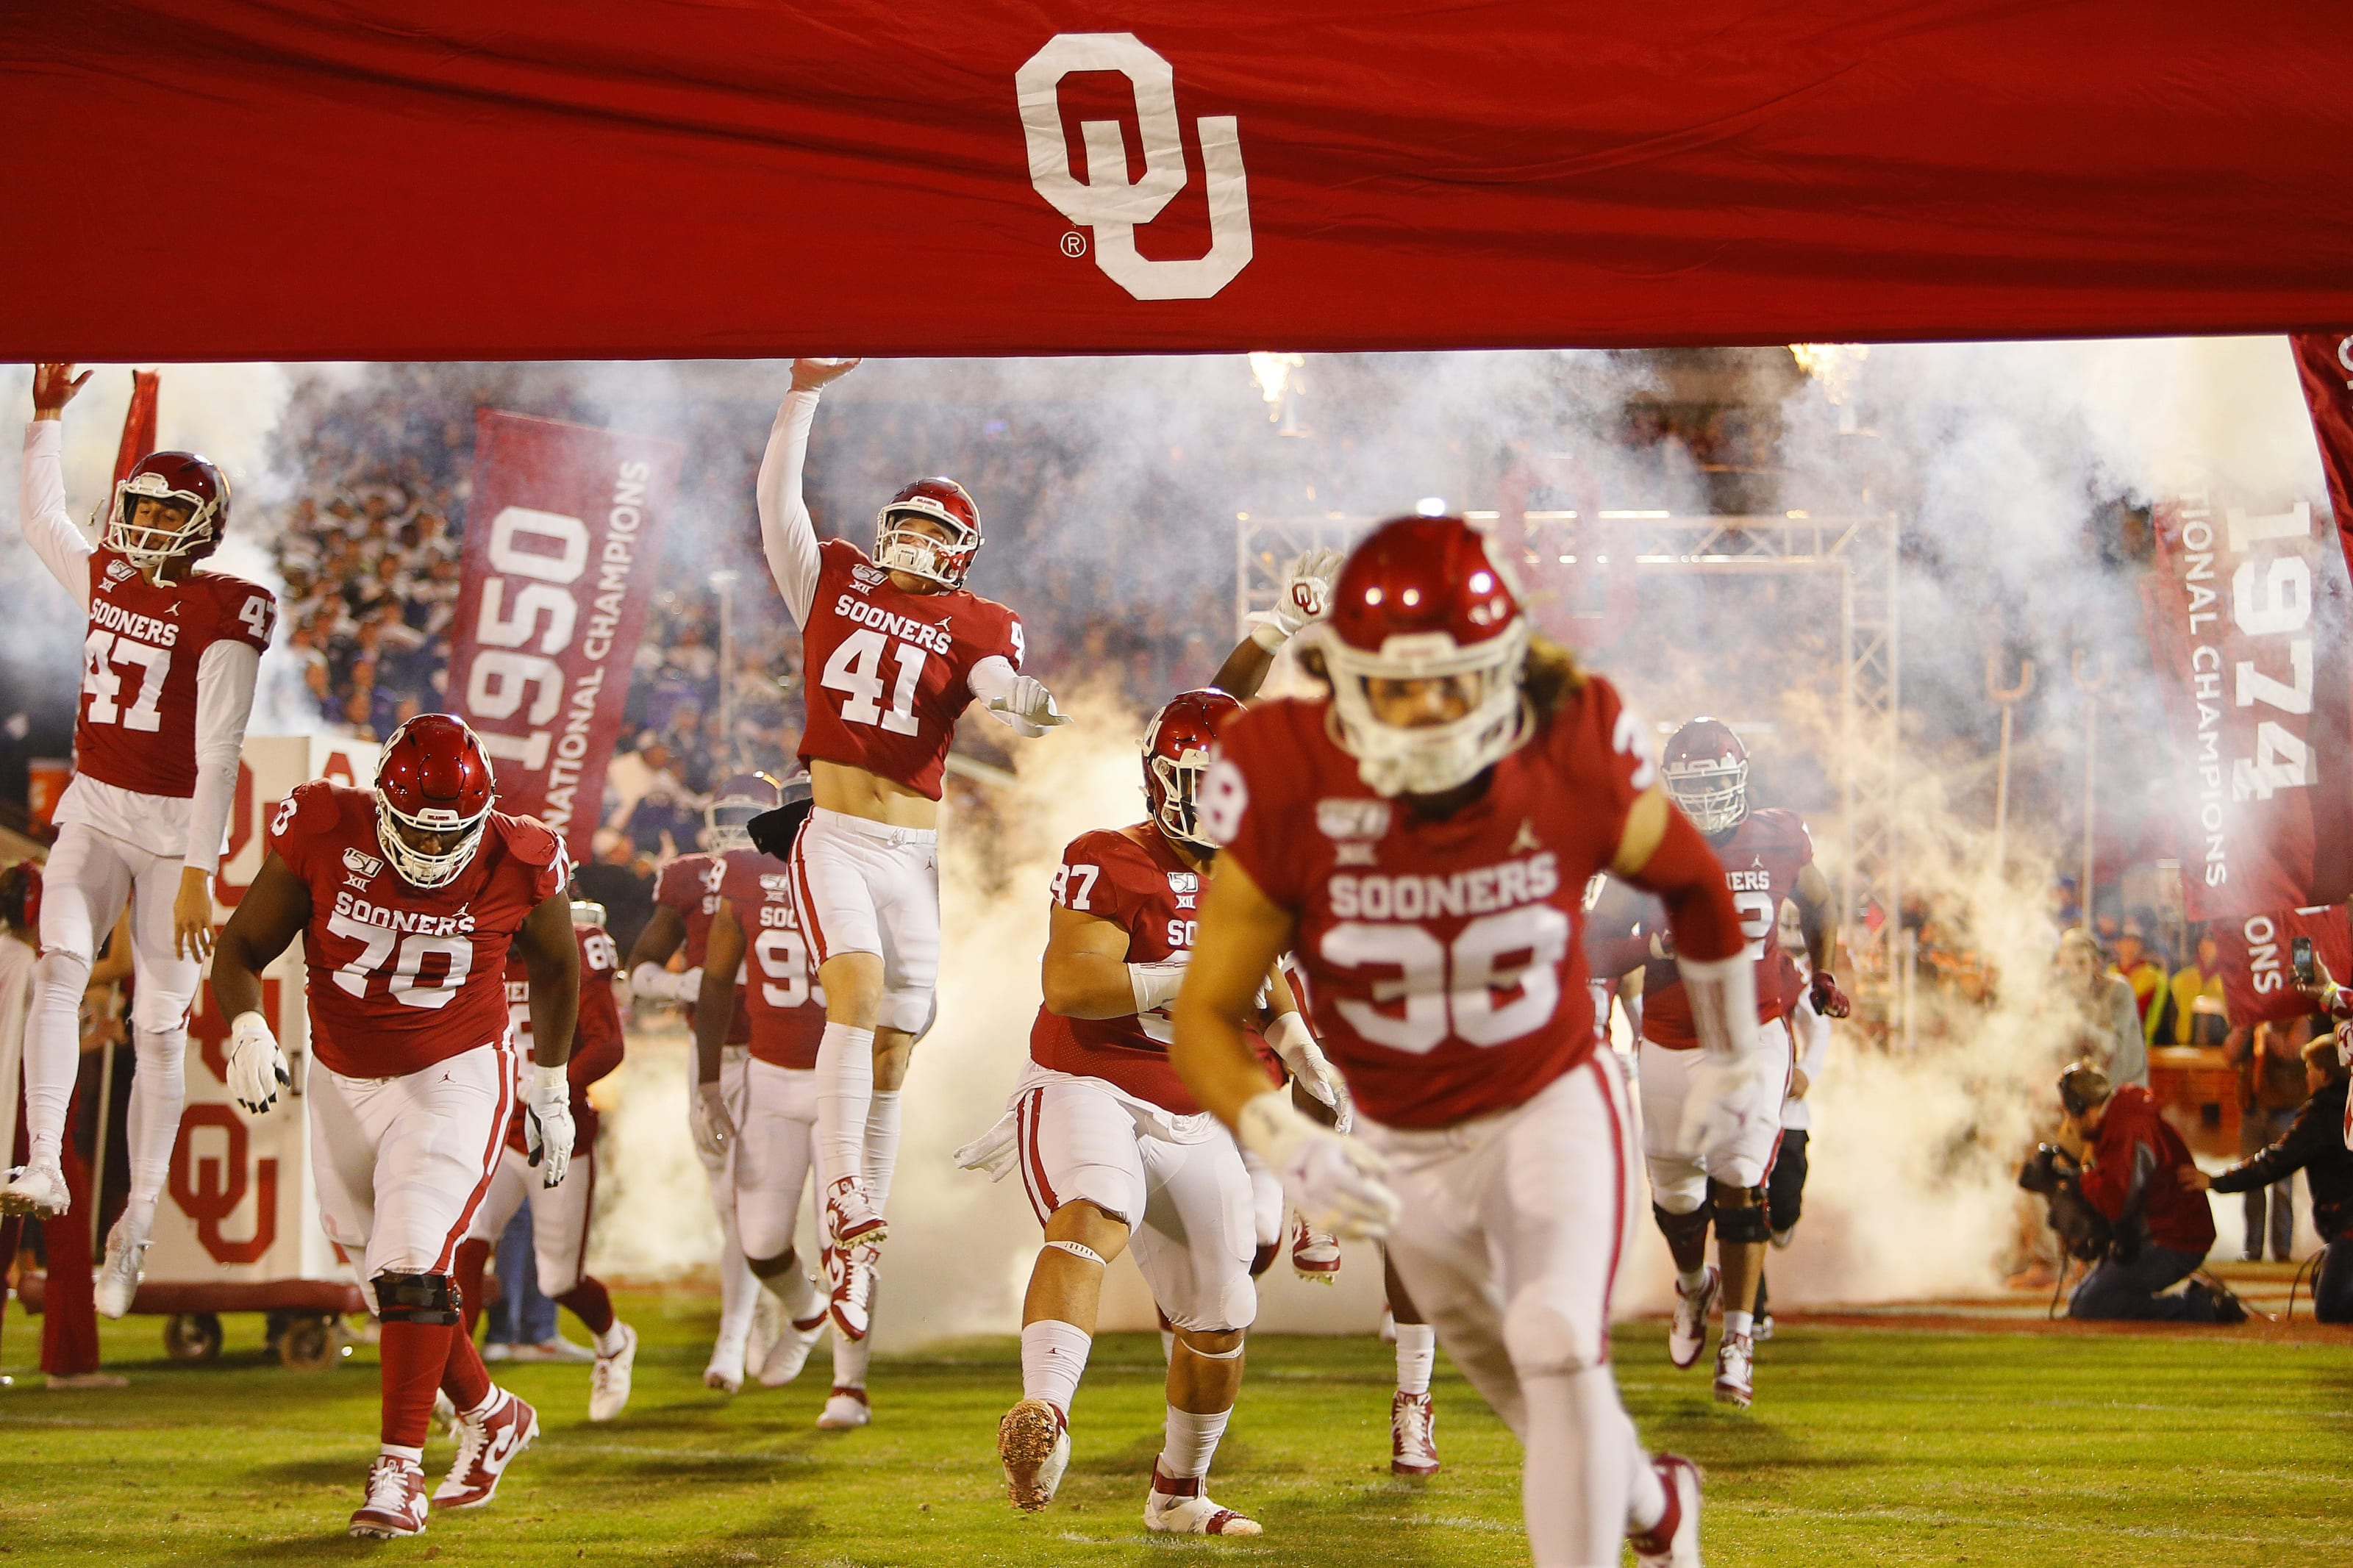 Oklahoma Football Five Games That Could Have Changed Ou Gridiron History